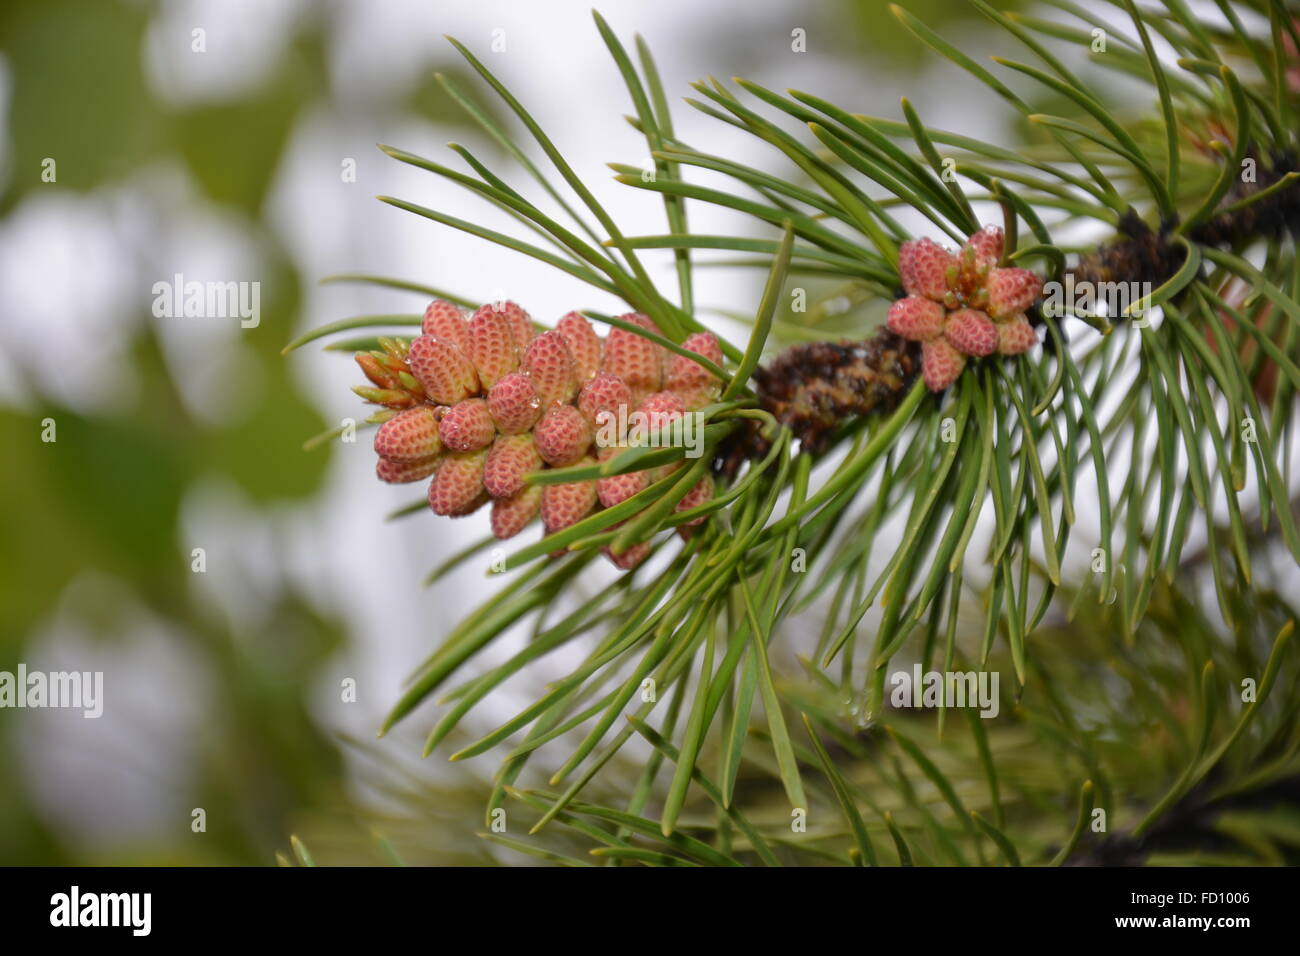 Close up of pine tree needles and baby pine cones. - Stock Image